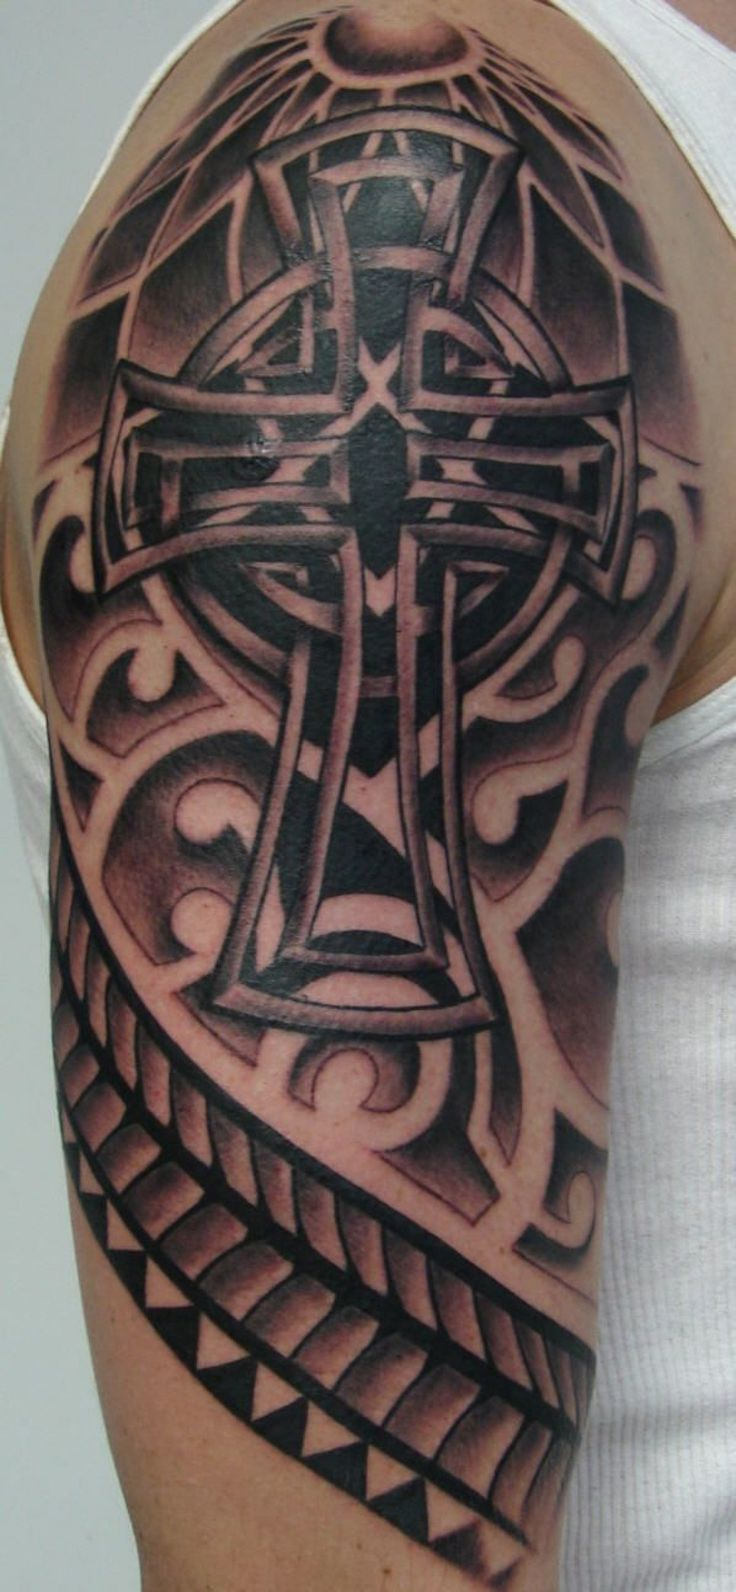 Tatouage celtique homme - Tatouage tribal